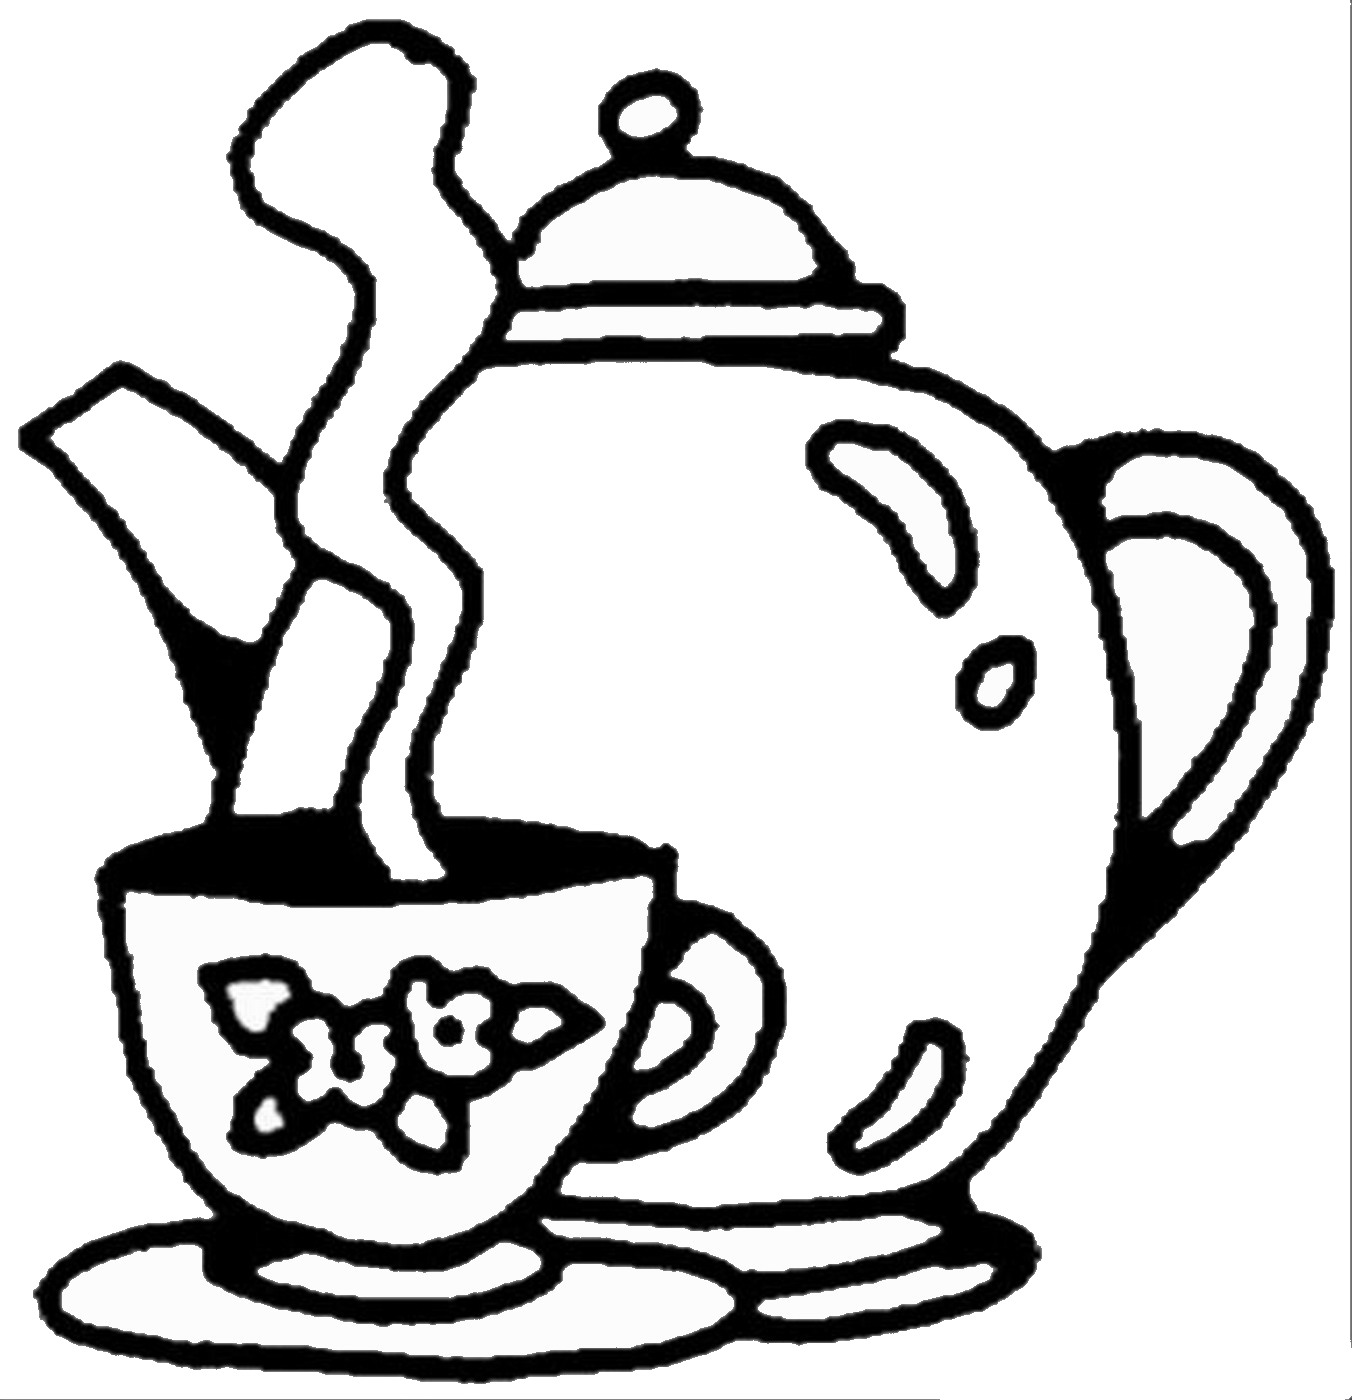 tea party colouring pages color and cook tea party by monica wellington dover tea pages colouring party